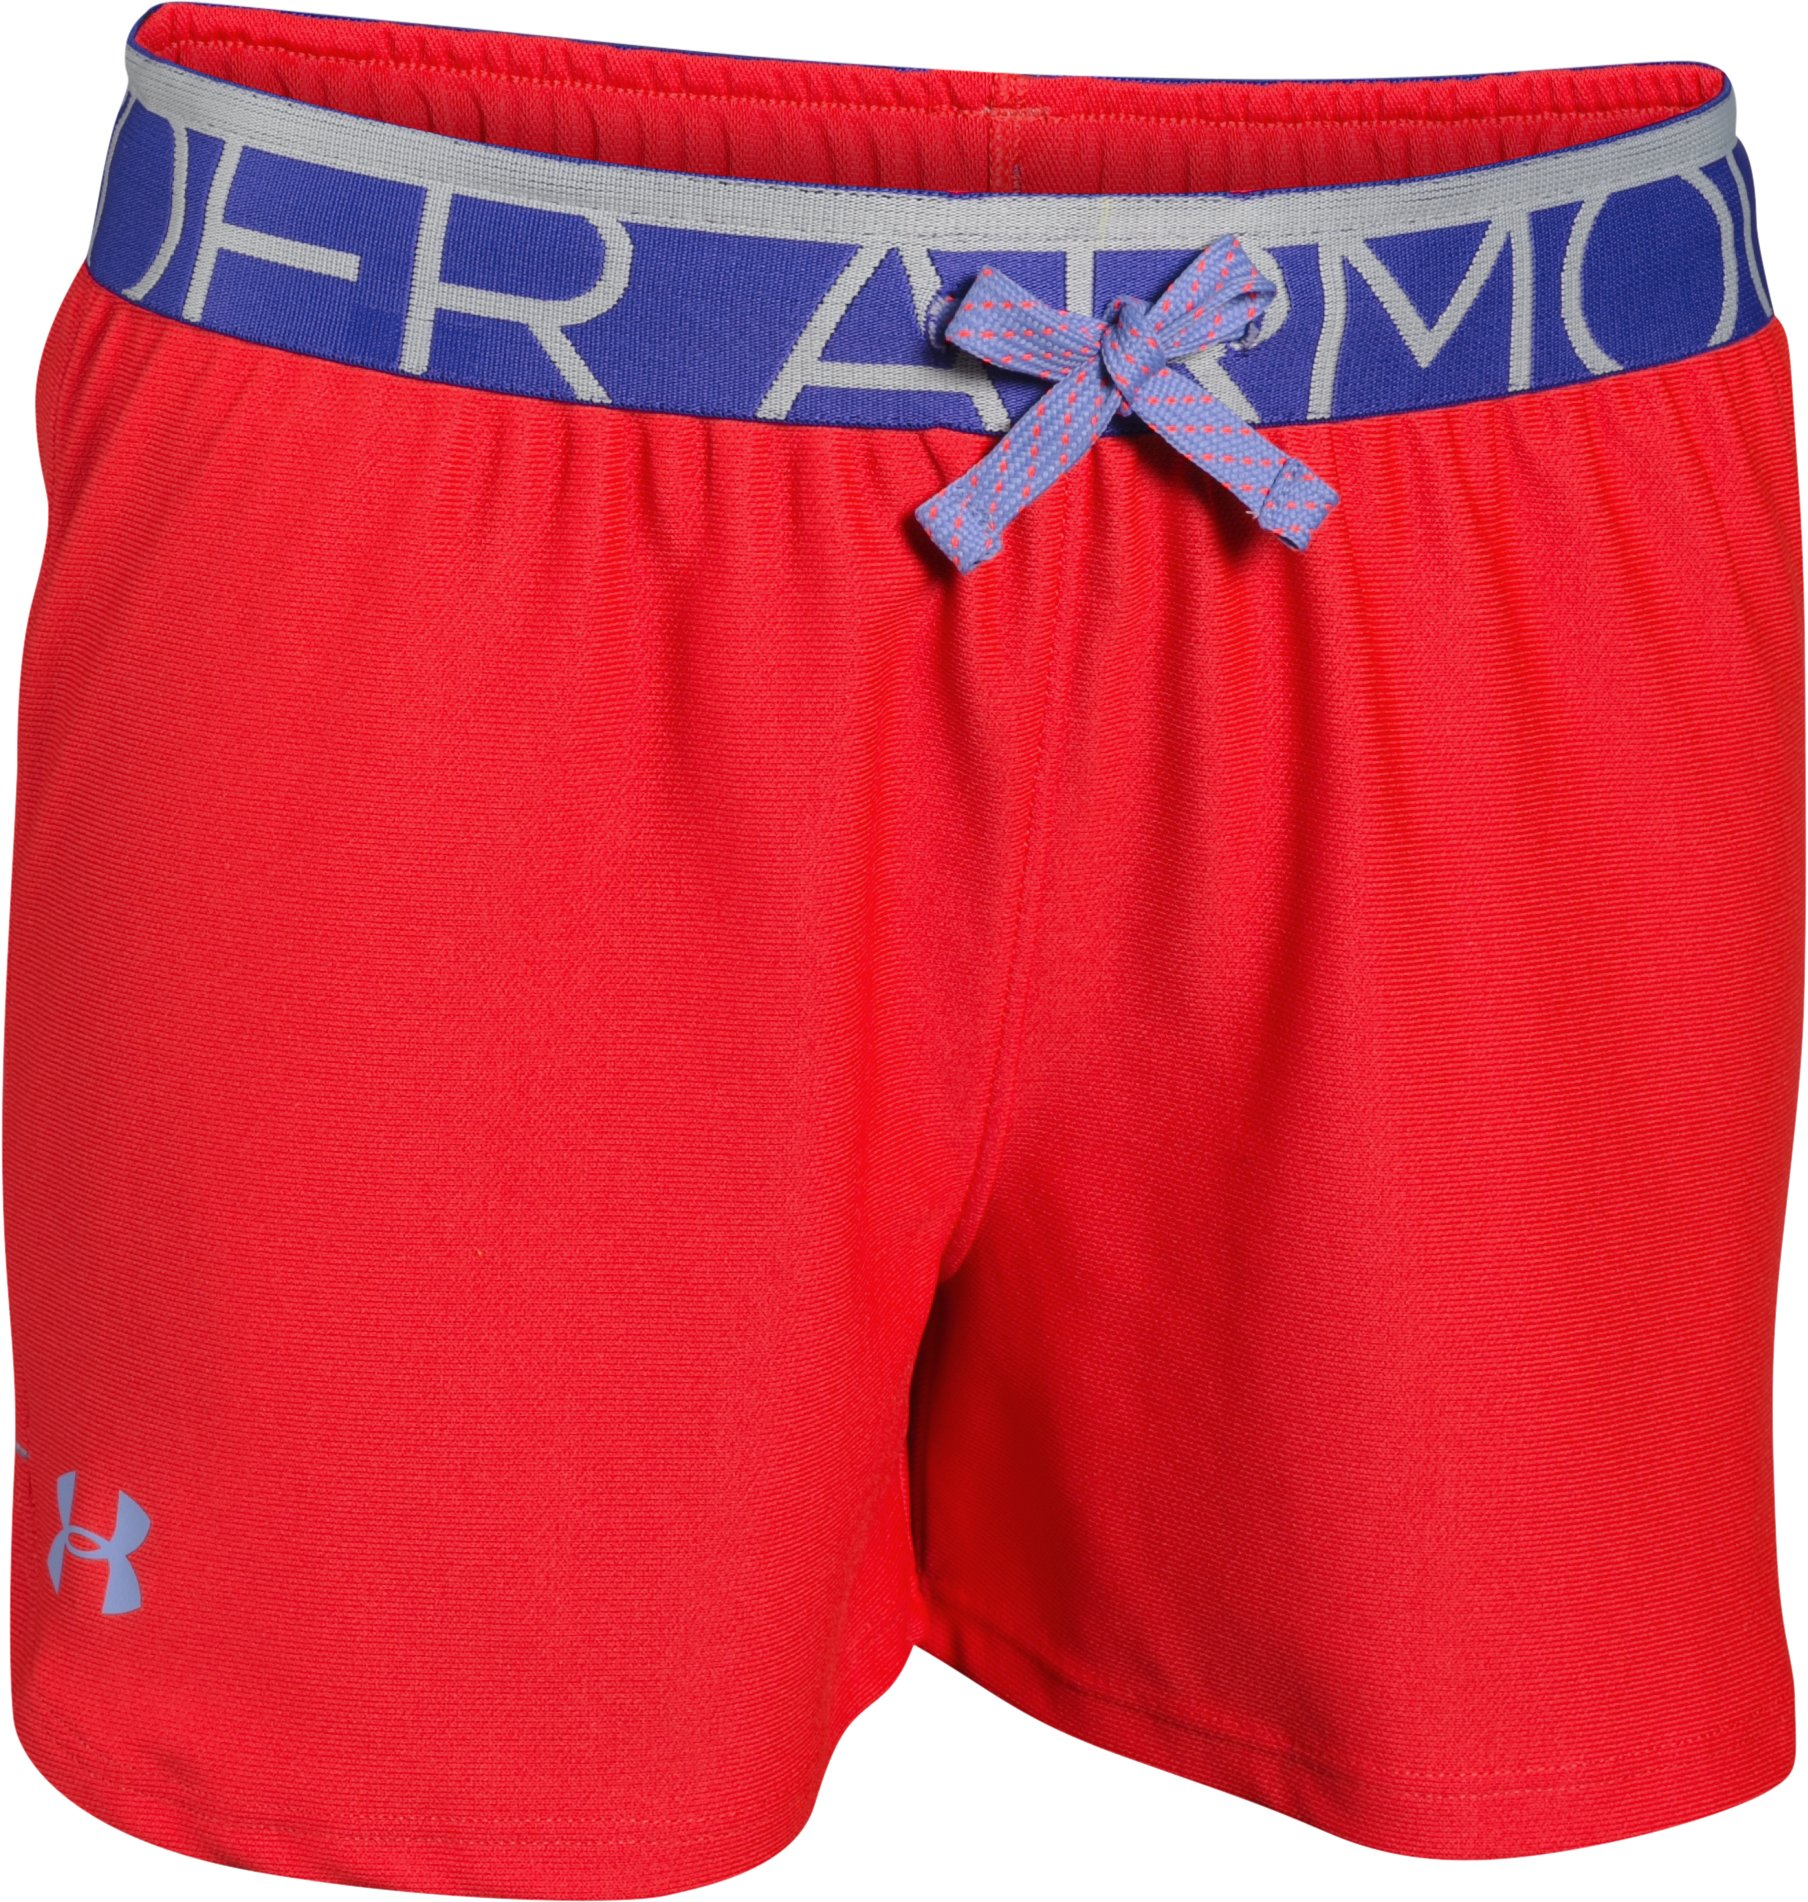 Girls' UA Play Up Shorts - 3 for $35, ROCKET RED, zoomed image